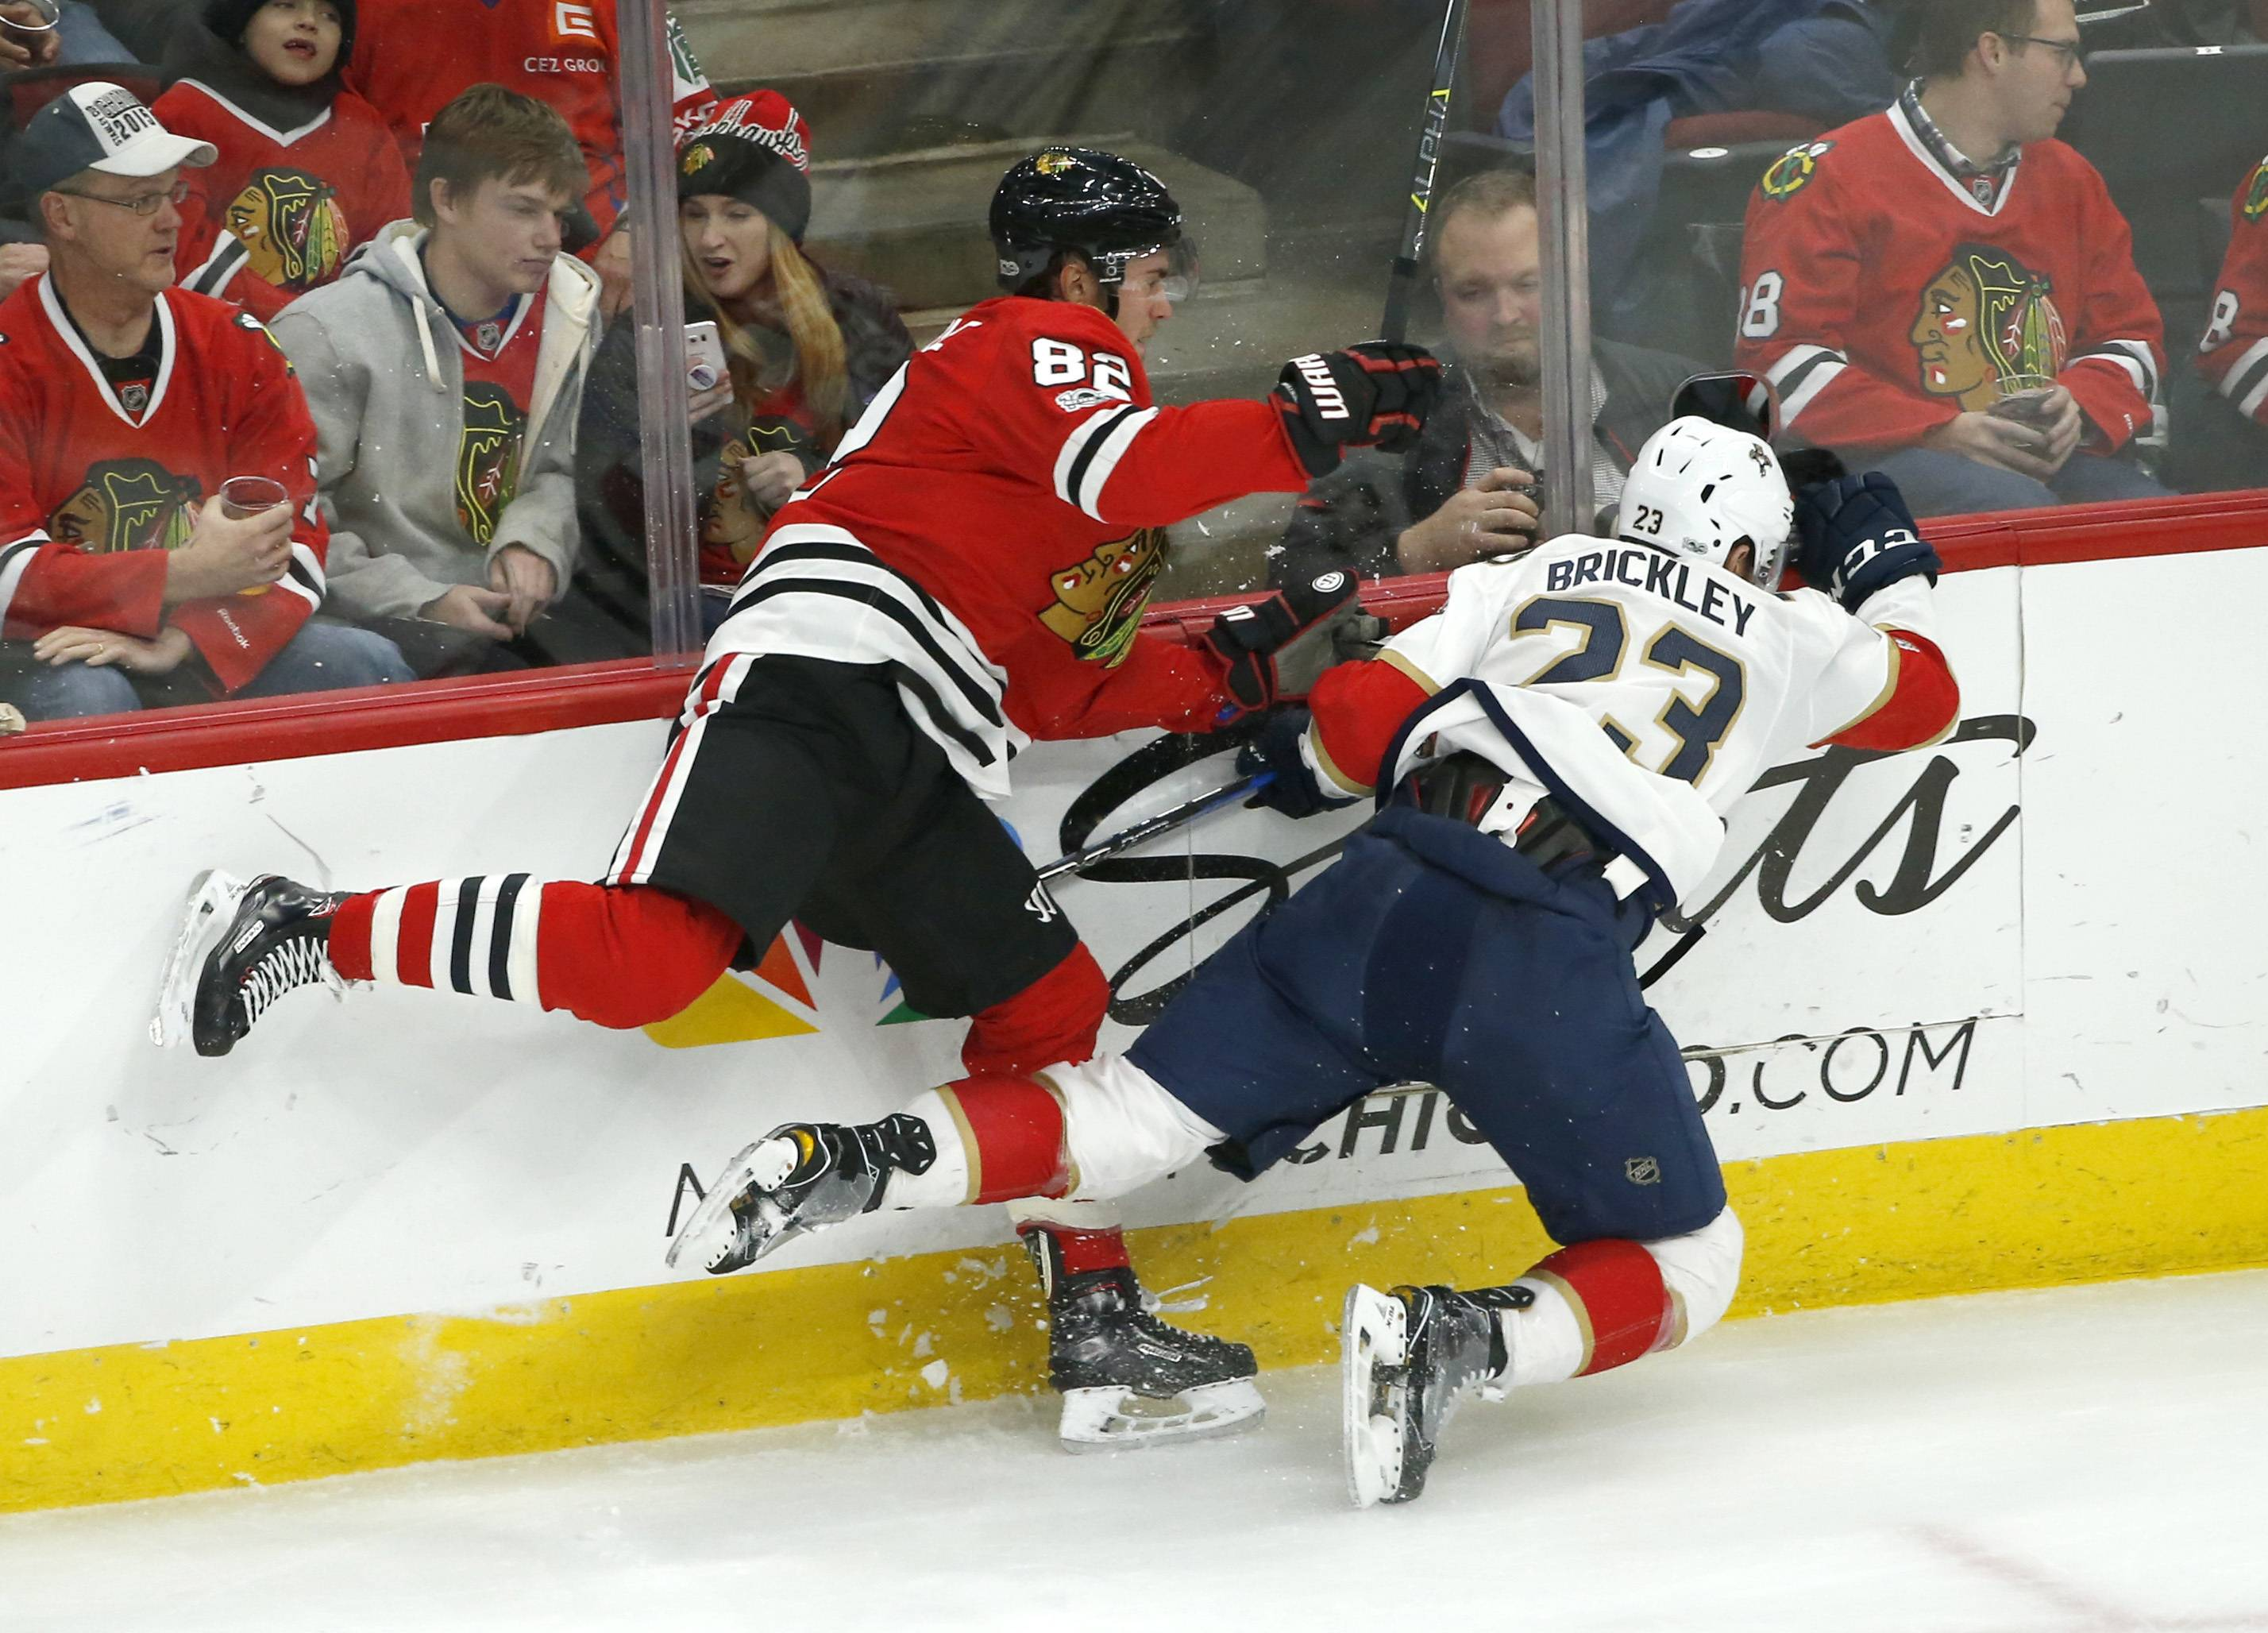 Chicago Blackhawks' Jordan Oesterle, left, checks Florida Panthers' Connor Brickley, right, along the boards during the second of an NHL hockey game Tuesday, Dec. 12, 2017, in Chicago. (AP Photo/Charles Rex Arbogast)